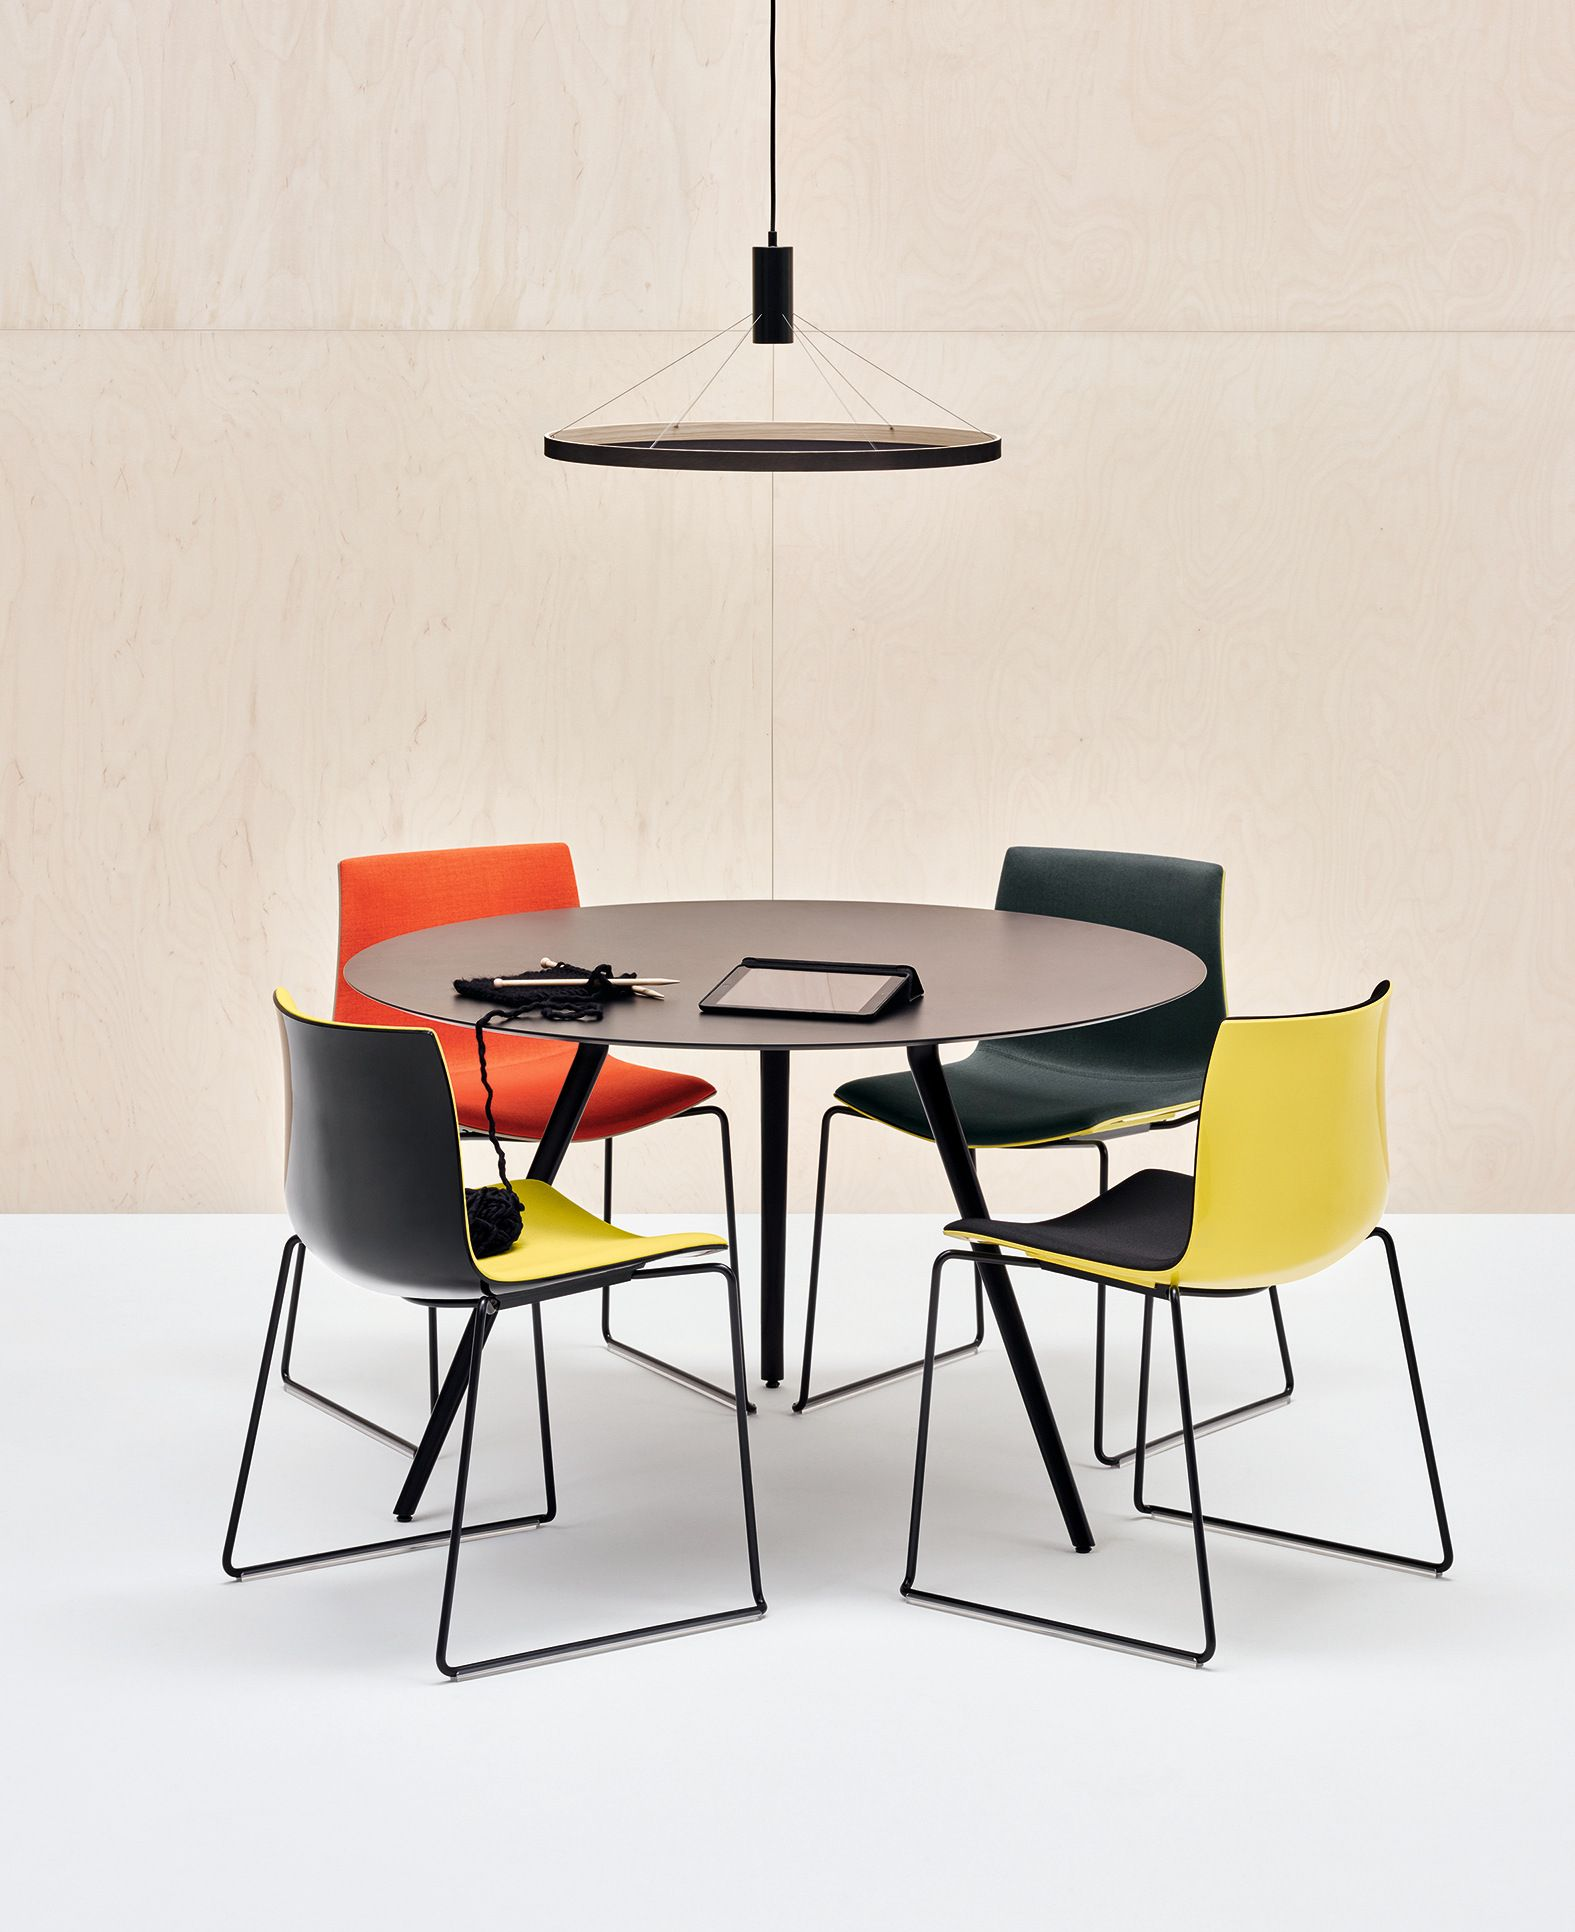 Round meeting table MEETY by Arper design Lievore Altherr Molina